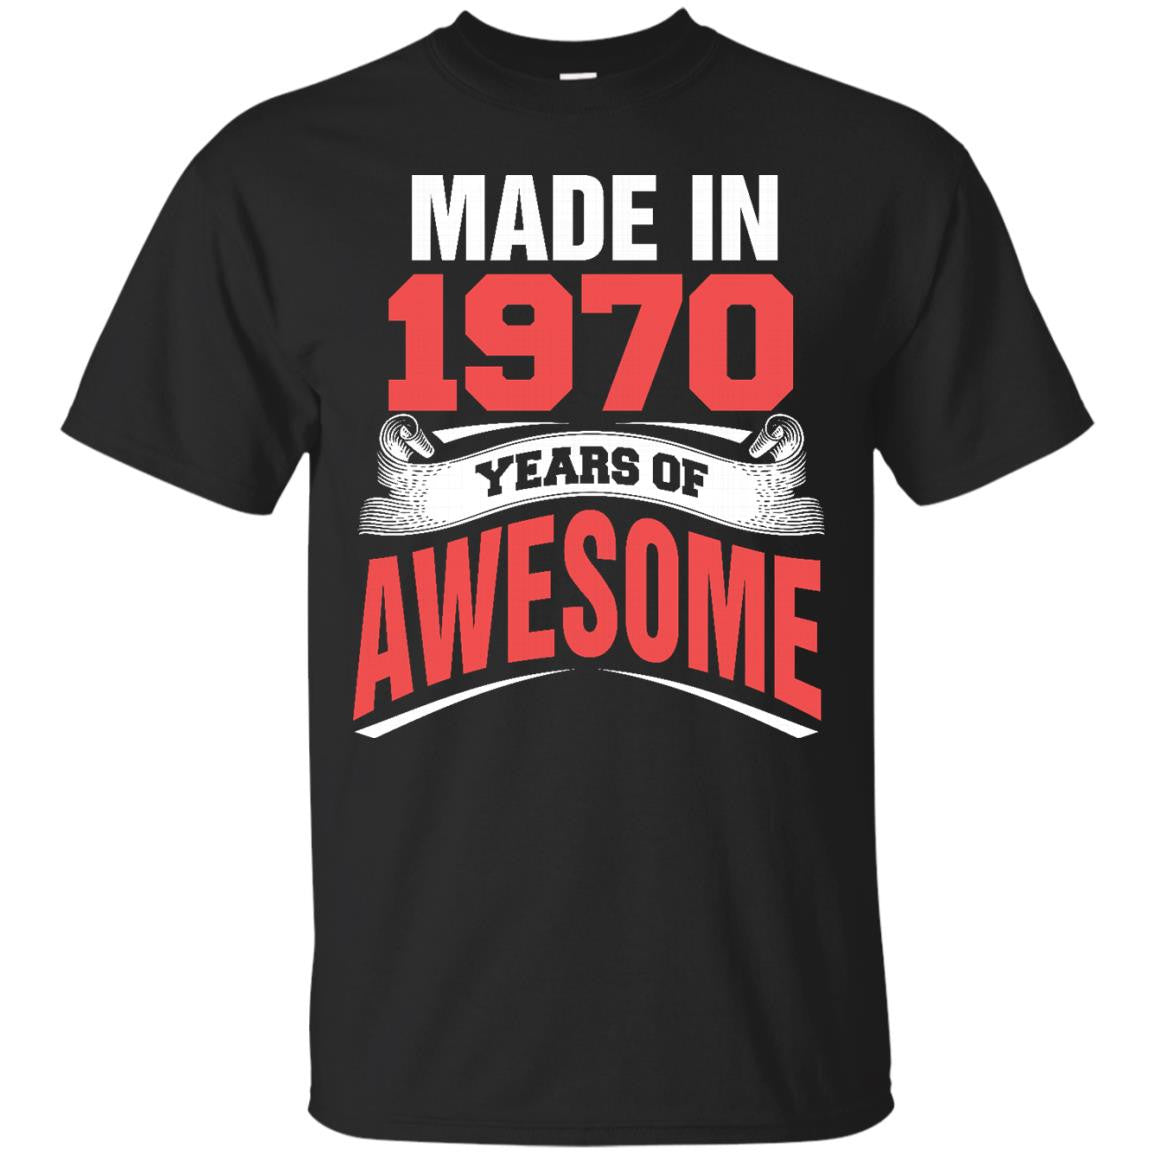 1970 Shirts Made In 1970 Year Of Awesome T-shirts Hoodies Sweatshirts